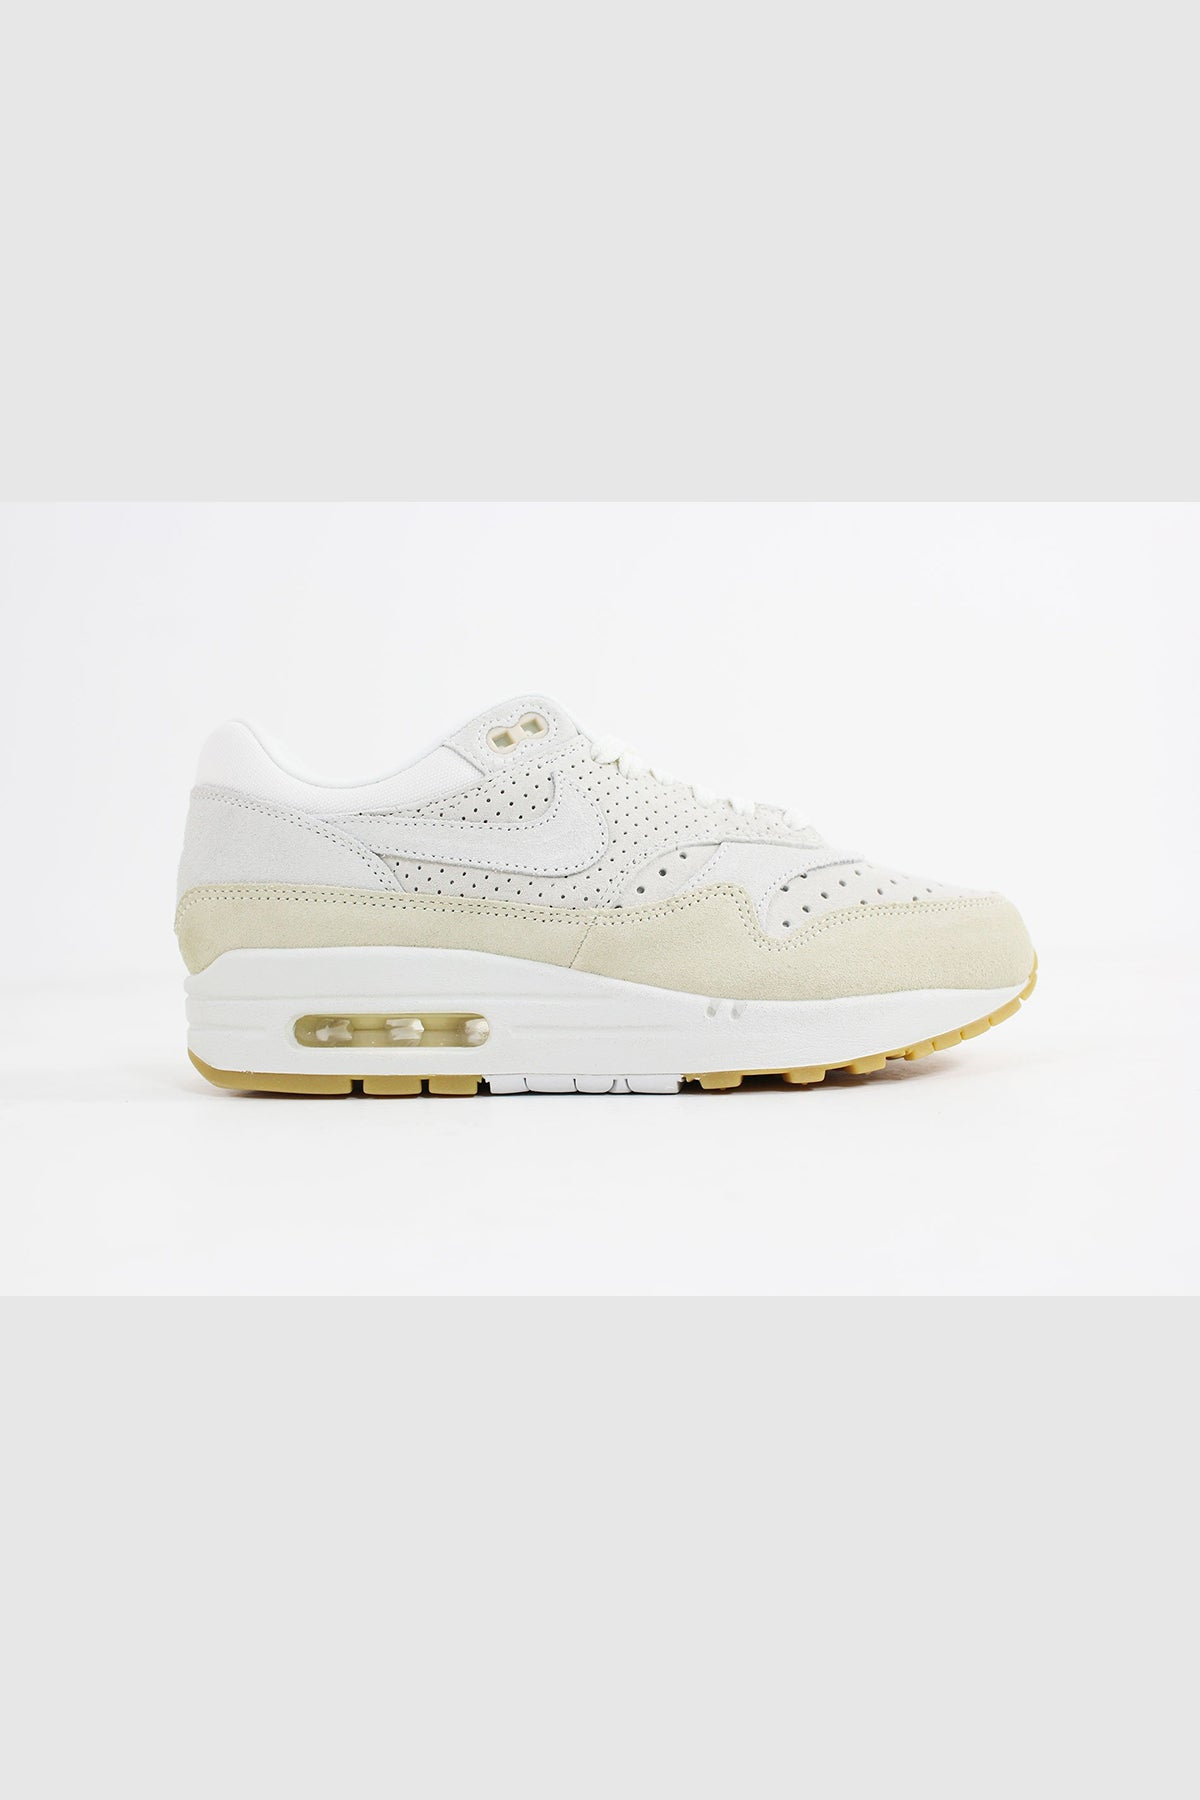 Nike - Air Max 1 Premium Women (Sail/ Sail-Fossil-Gum Light Brown) 454746-110